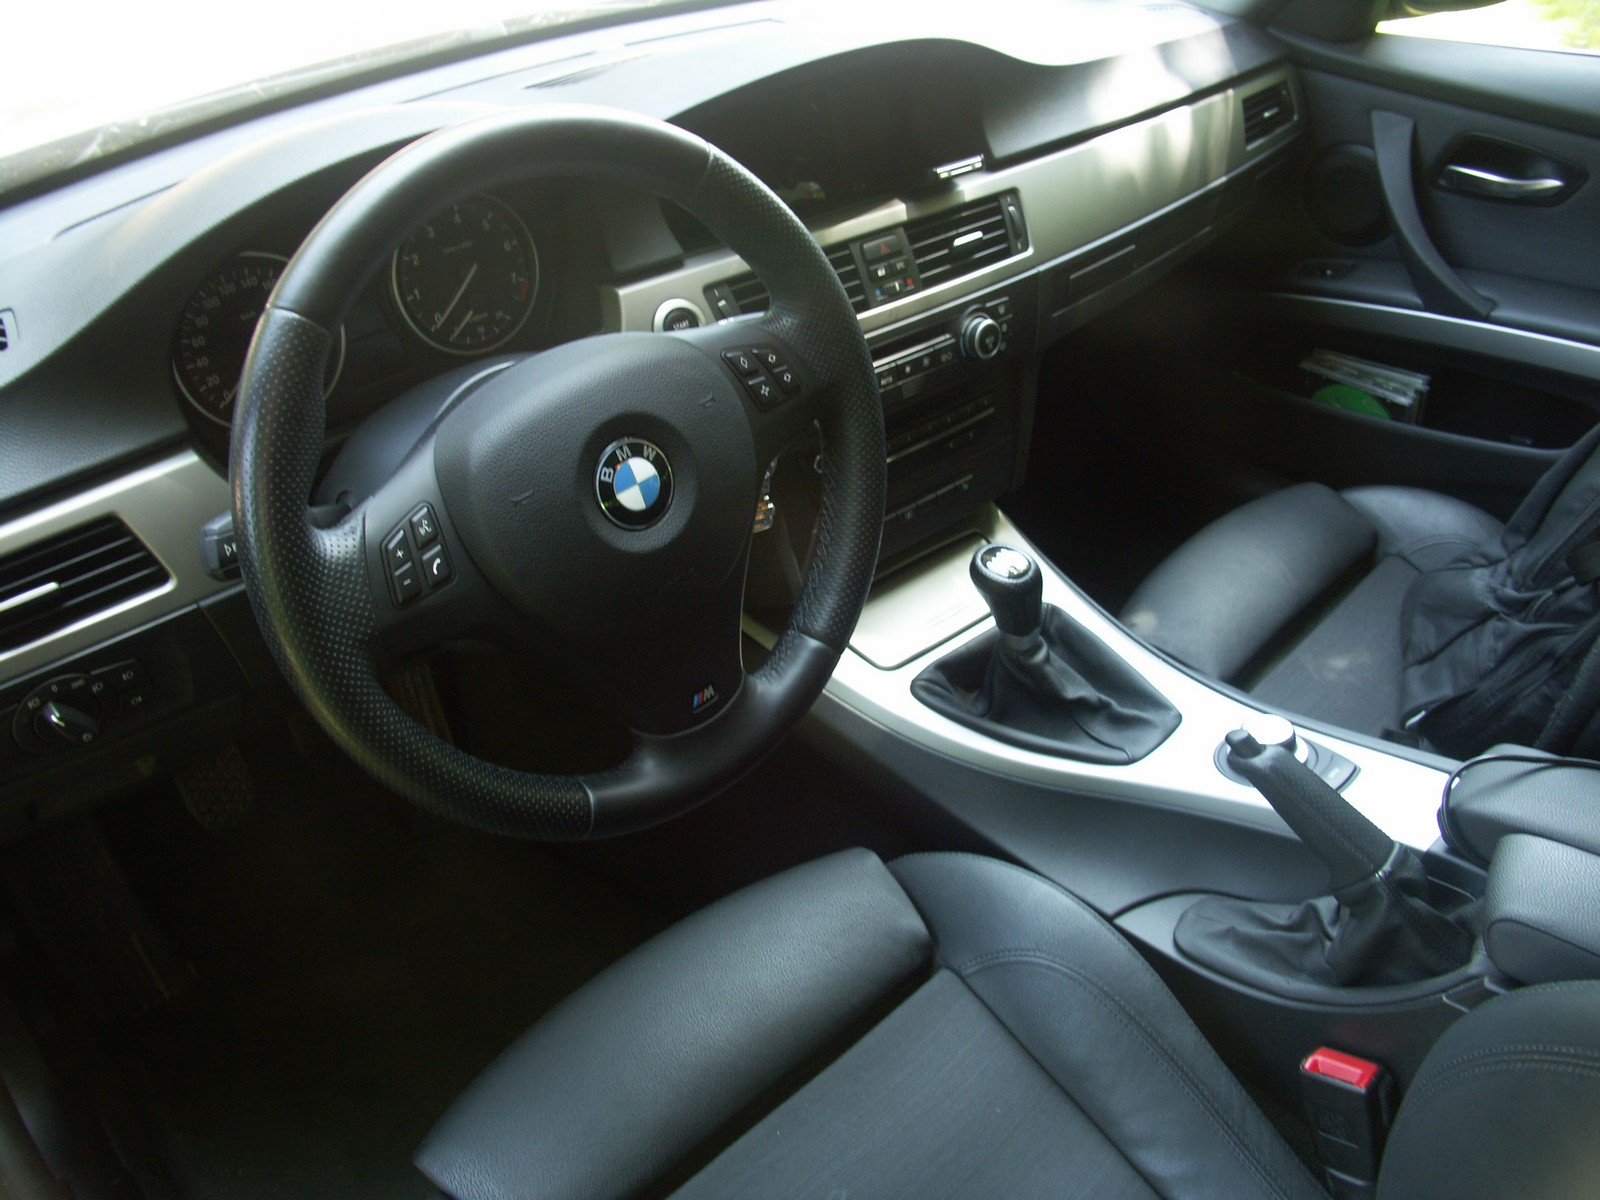 Comparatif bmw essai de l 39 e36 323i contre l 39 e90 325i for Interieur cuir bmw e90